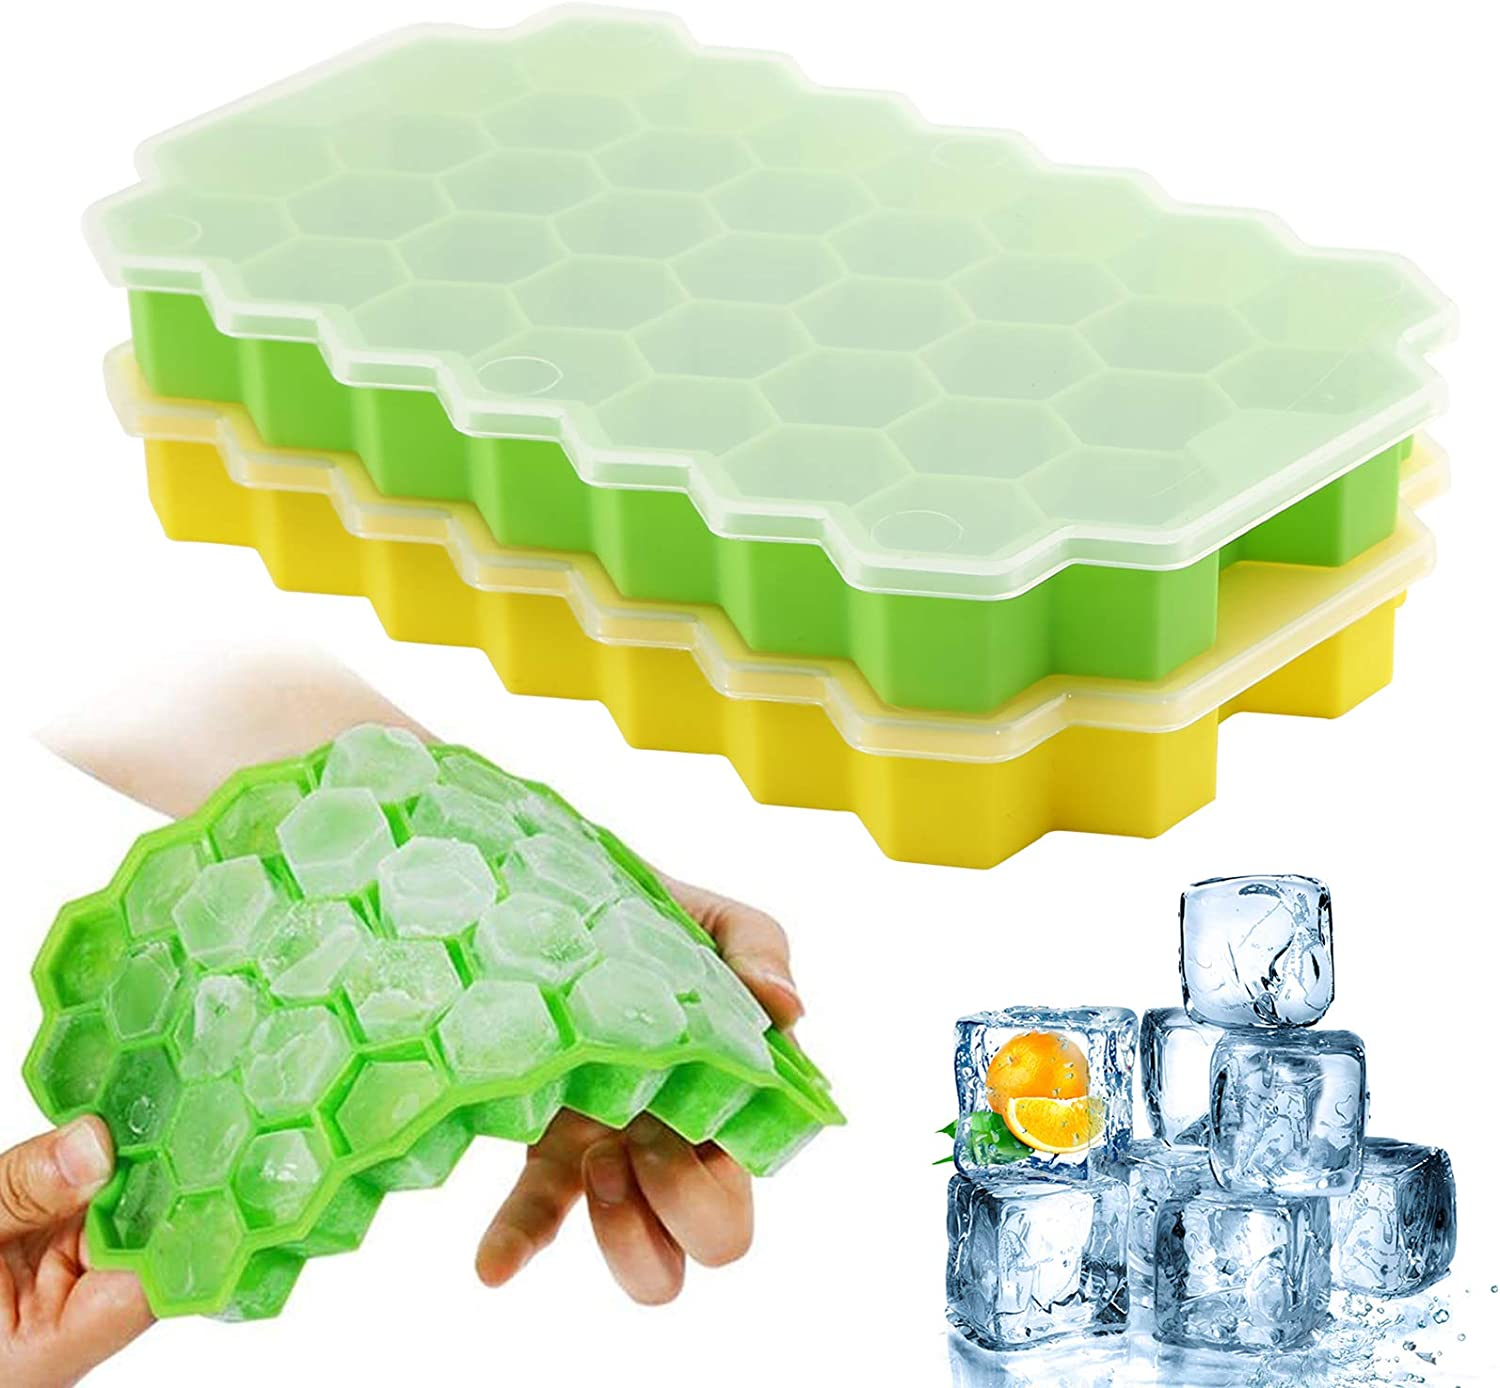 Ice Cube Trays with Lids, 2-Pack Ice Cubes Food Grade Full Silicone Silica Gel Flexible BPA Free 37 Honeycomb Ice Cube Molds for Chilled Drinks, Whiskey & Cocktails (GreenxYellow)